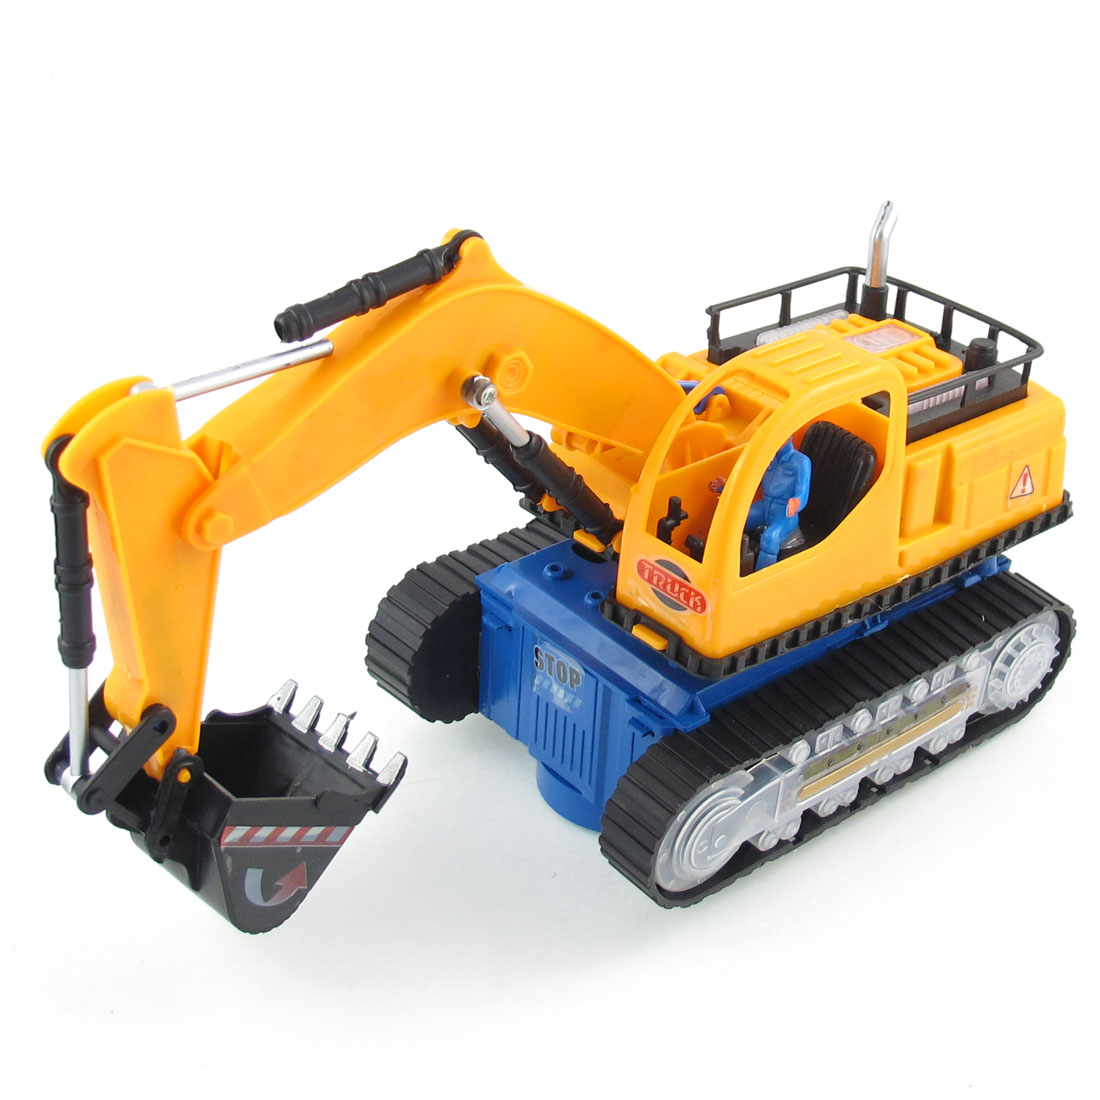 Black Light Orange Plastic Excavator Truck Toy for Kids